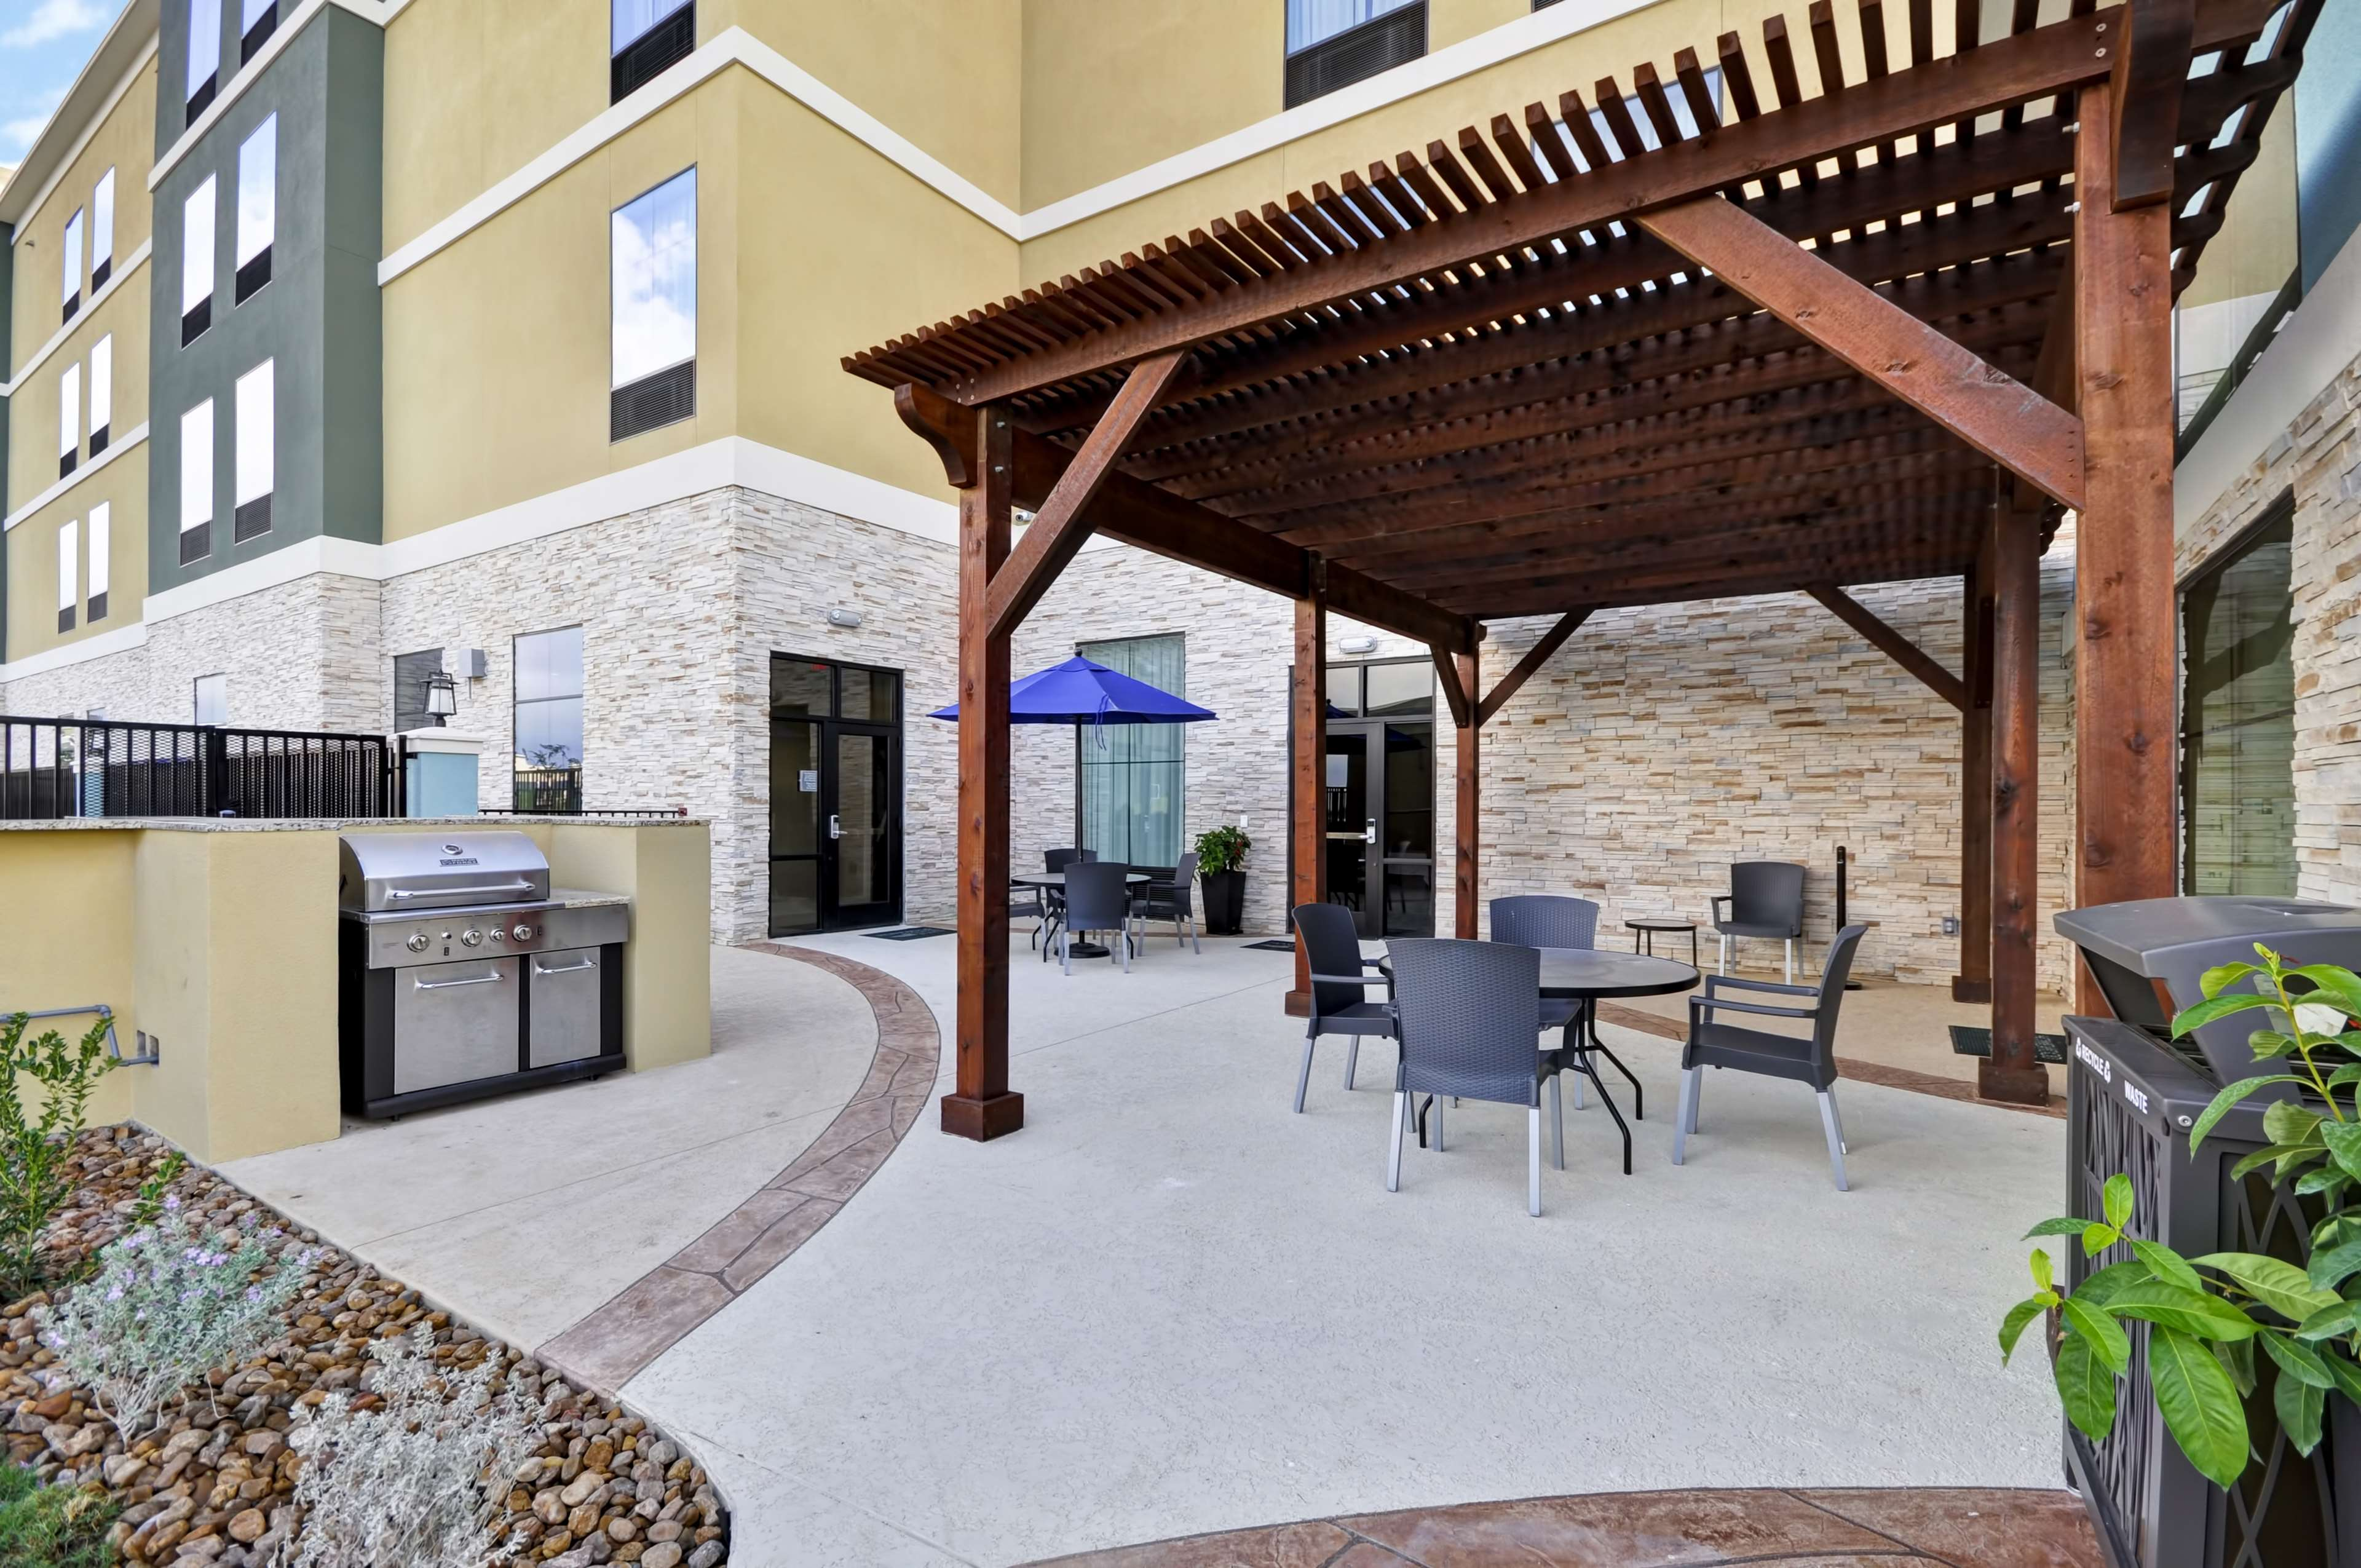 Homewood Suites by Hilton New Braunfels image 22